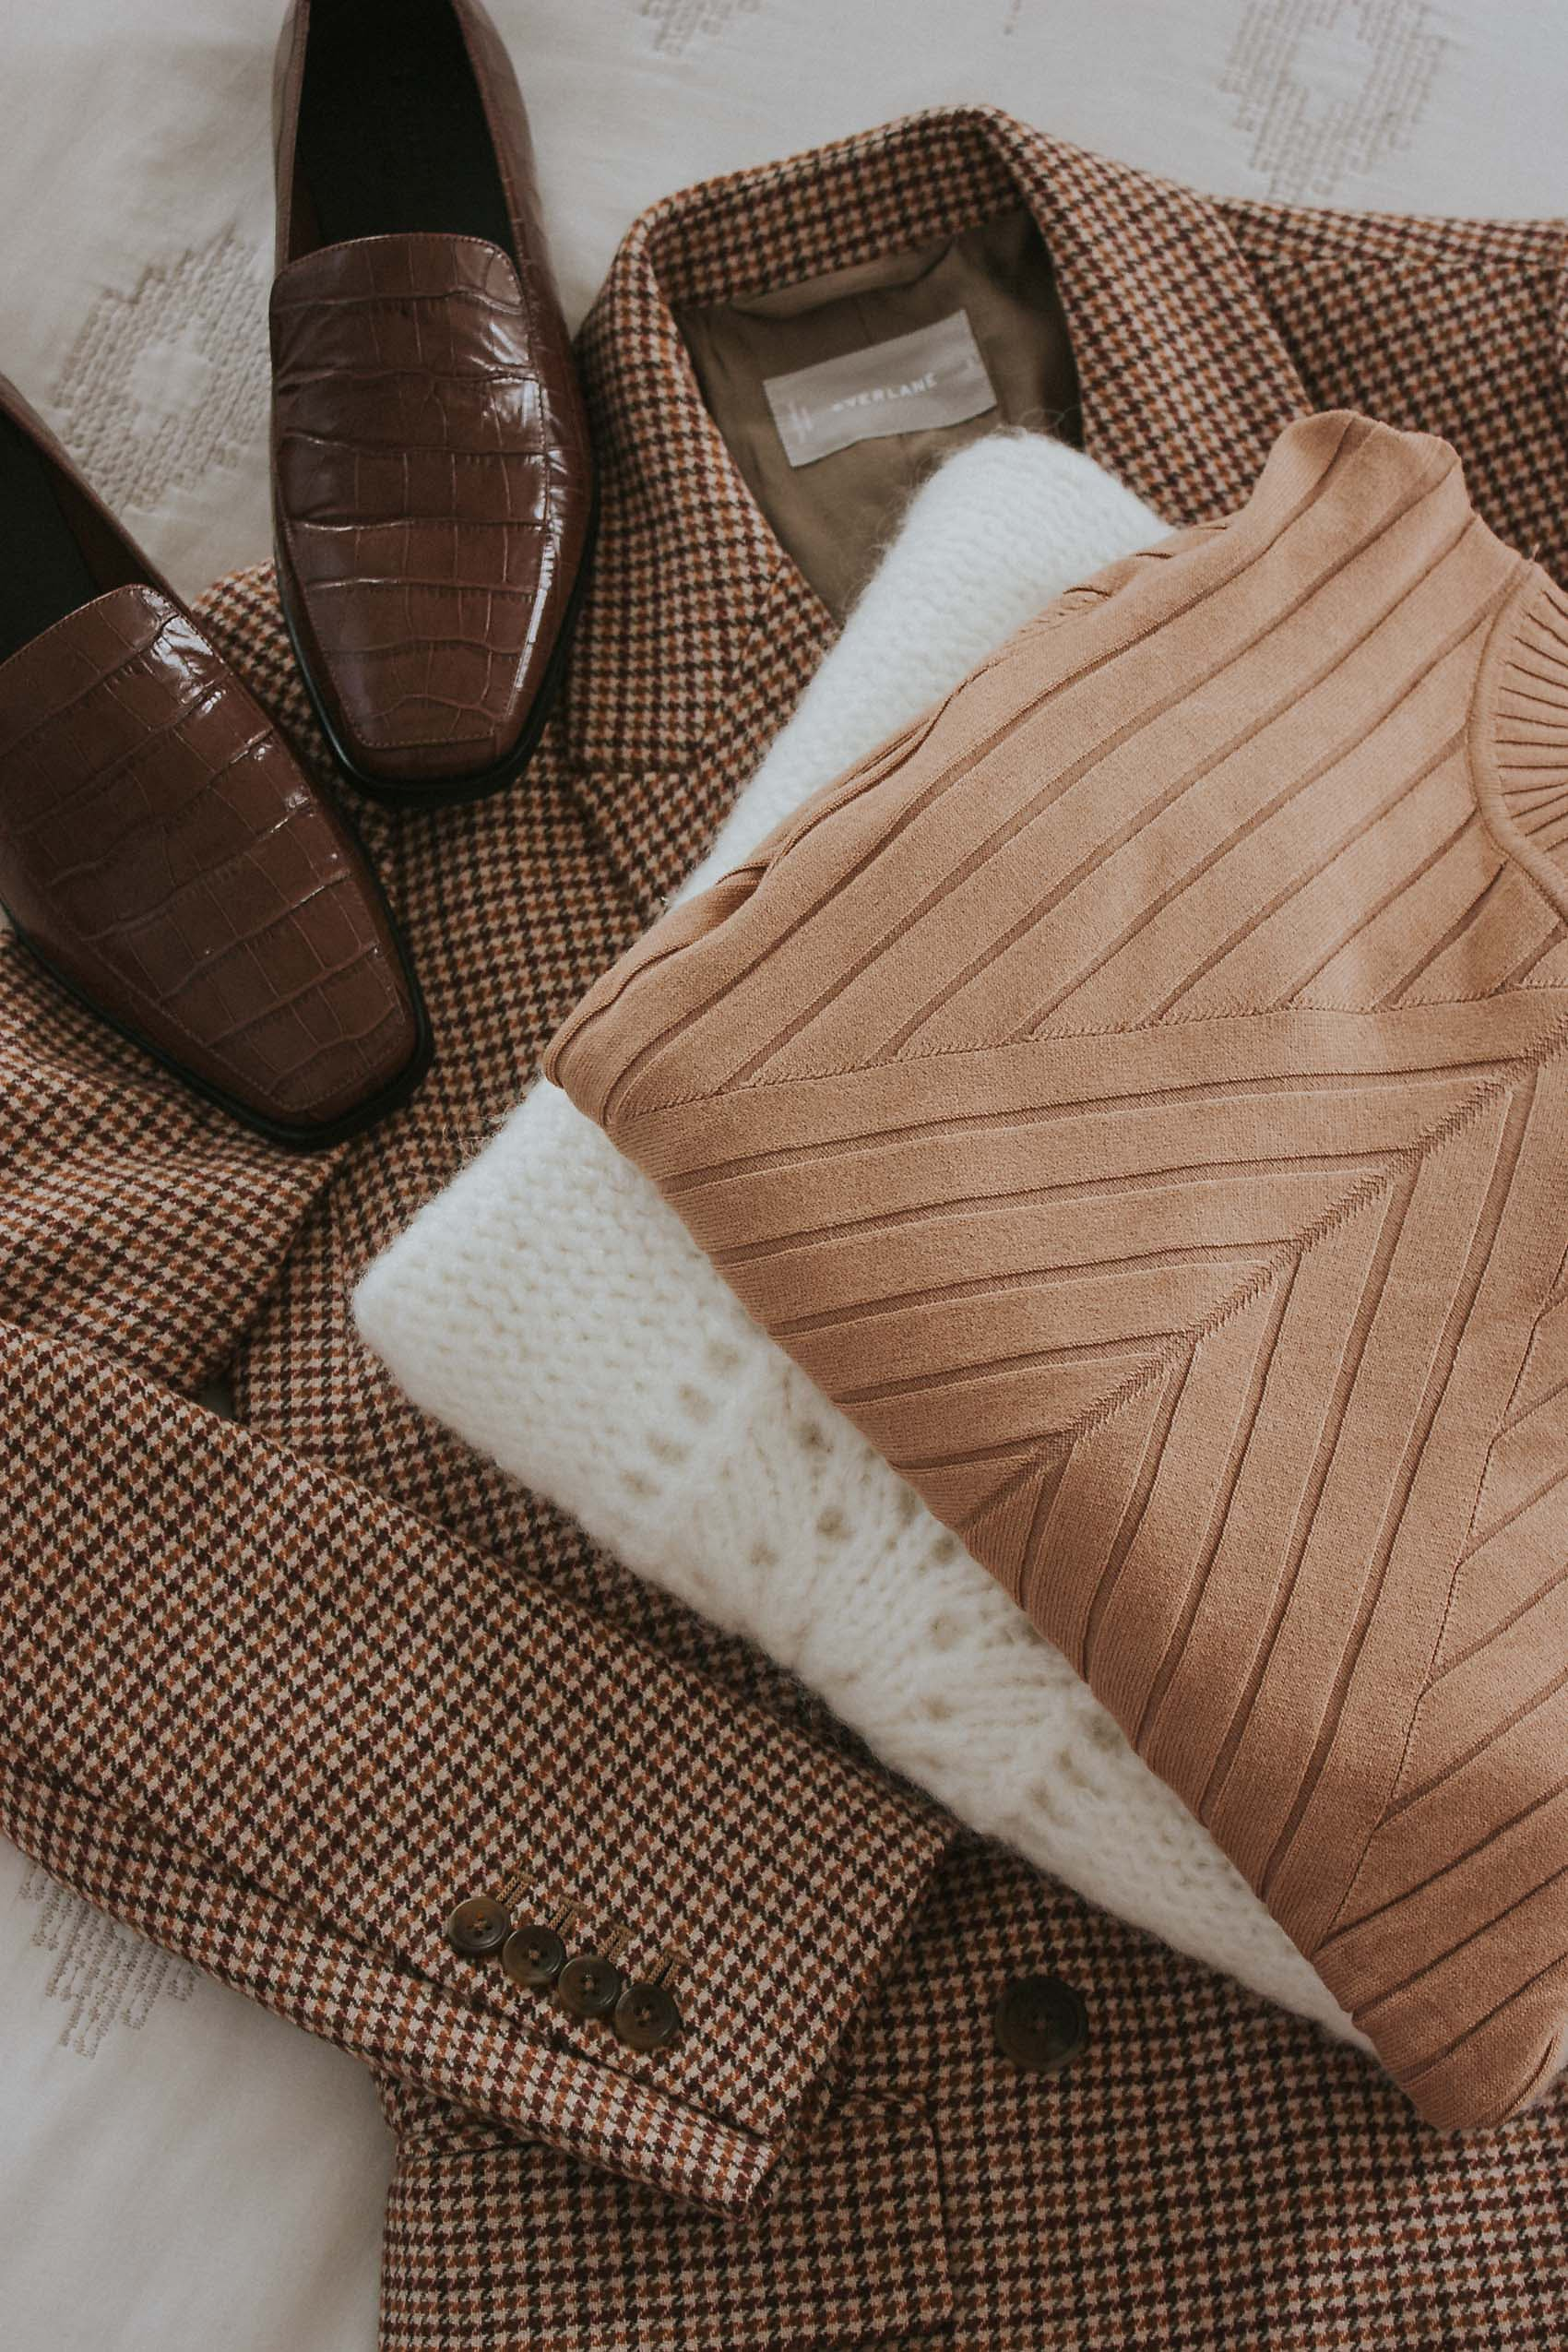 How to get your sweaters to last longer, stack of sweaters with blazer and shoes.